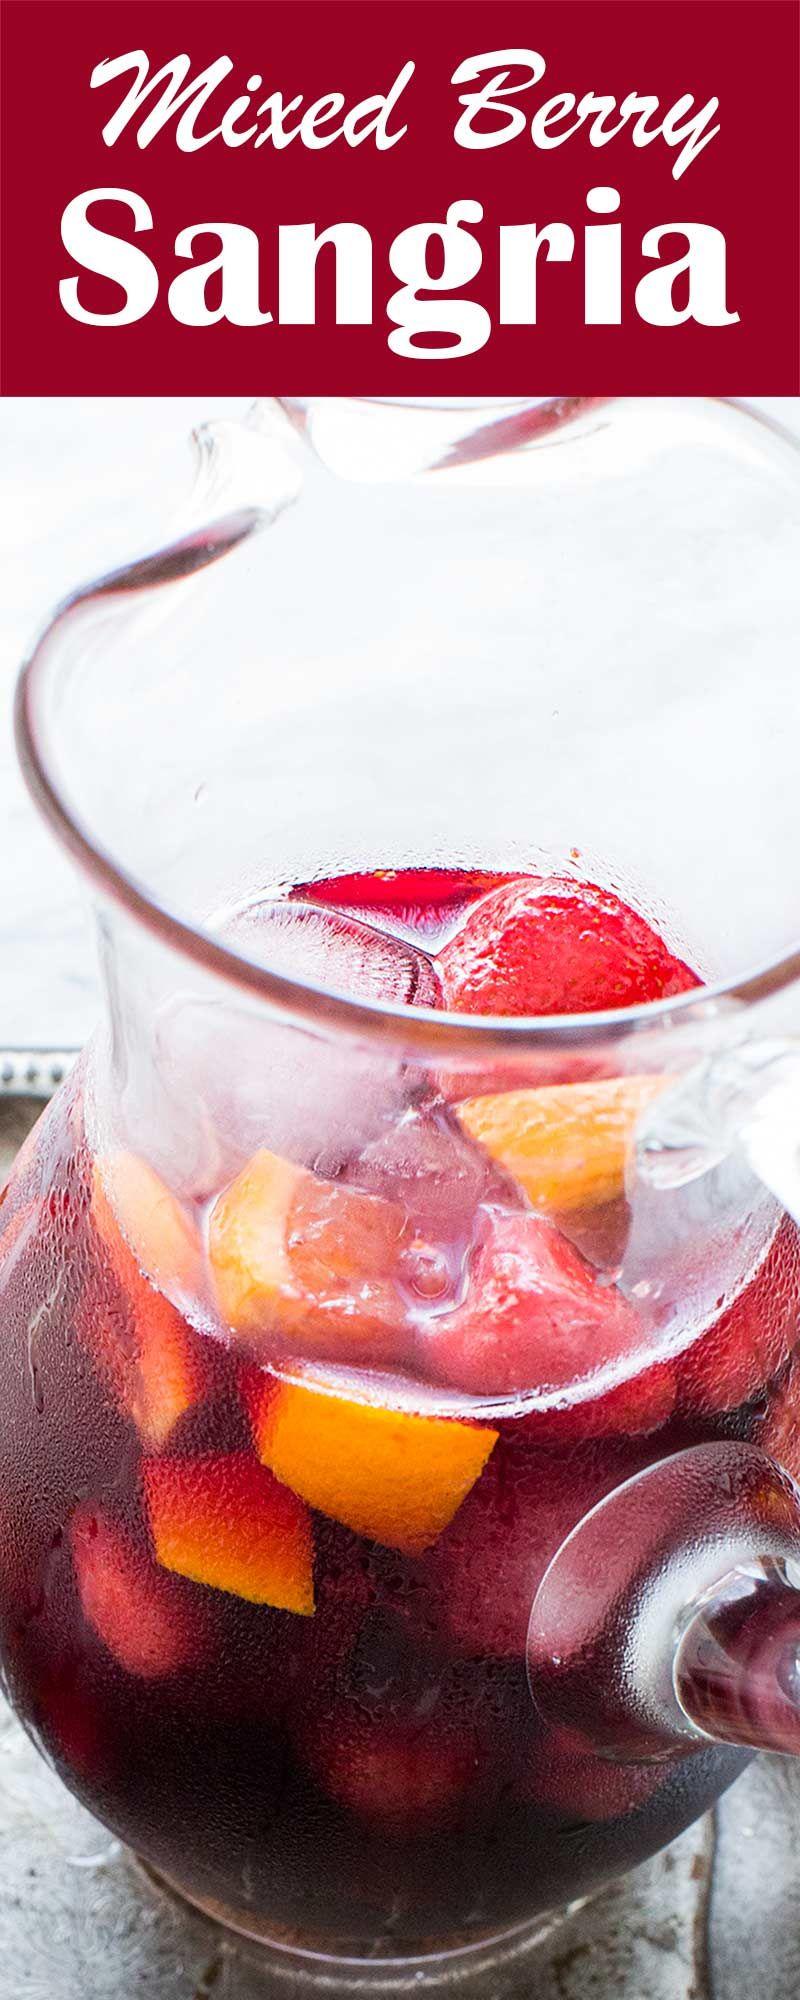 Mixed Berry Sangria Recipe Simplyrecipes Com Recipe Berry Sangria Red Wine Sangria Red Sangria Recipes